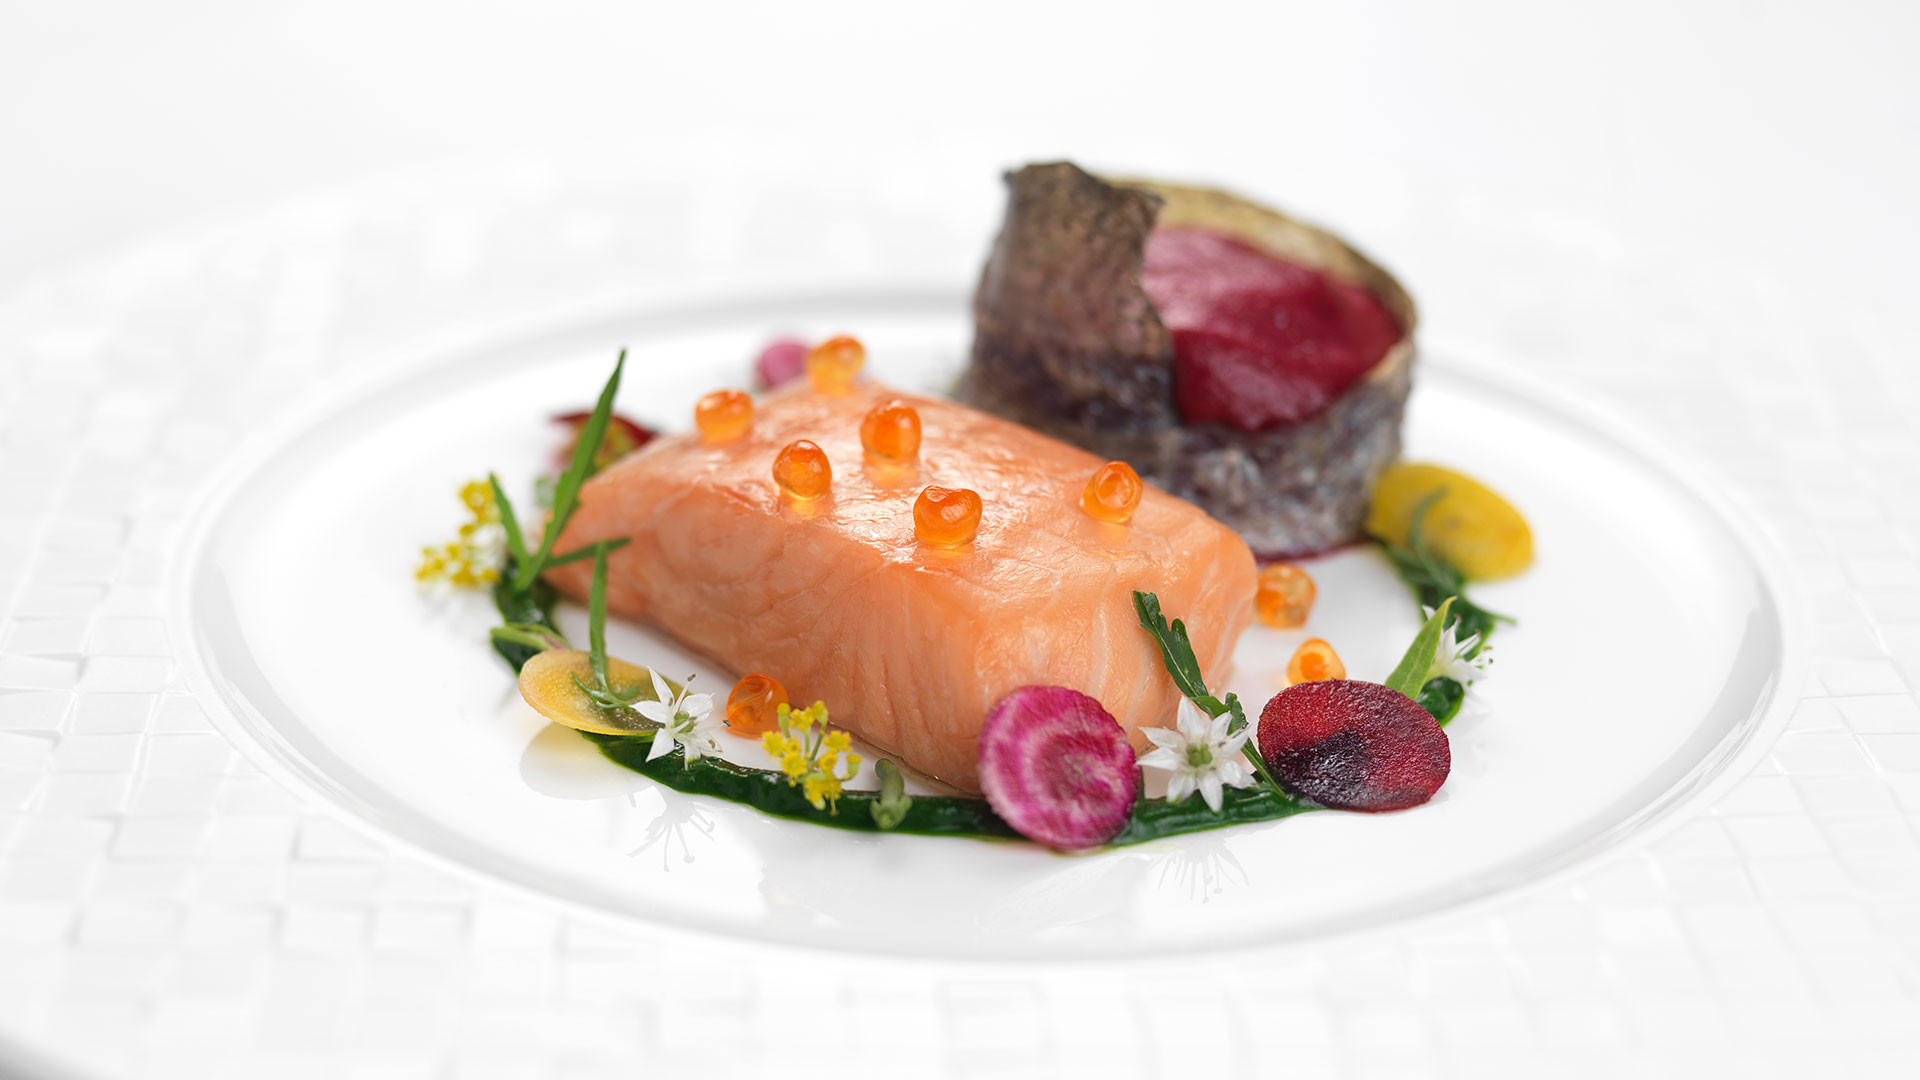 An artful plate from Le Cordon Bleu